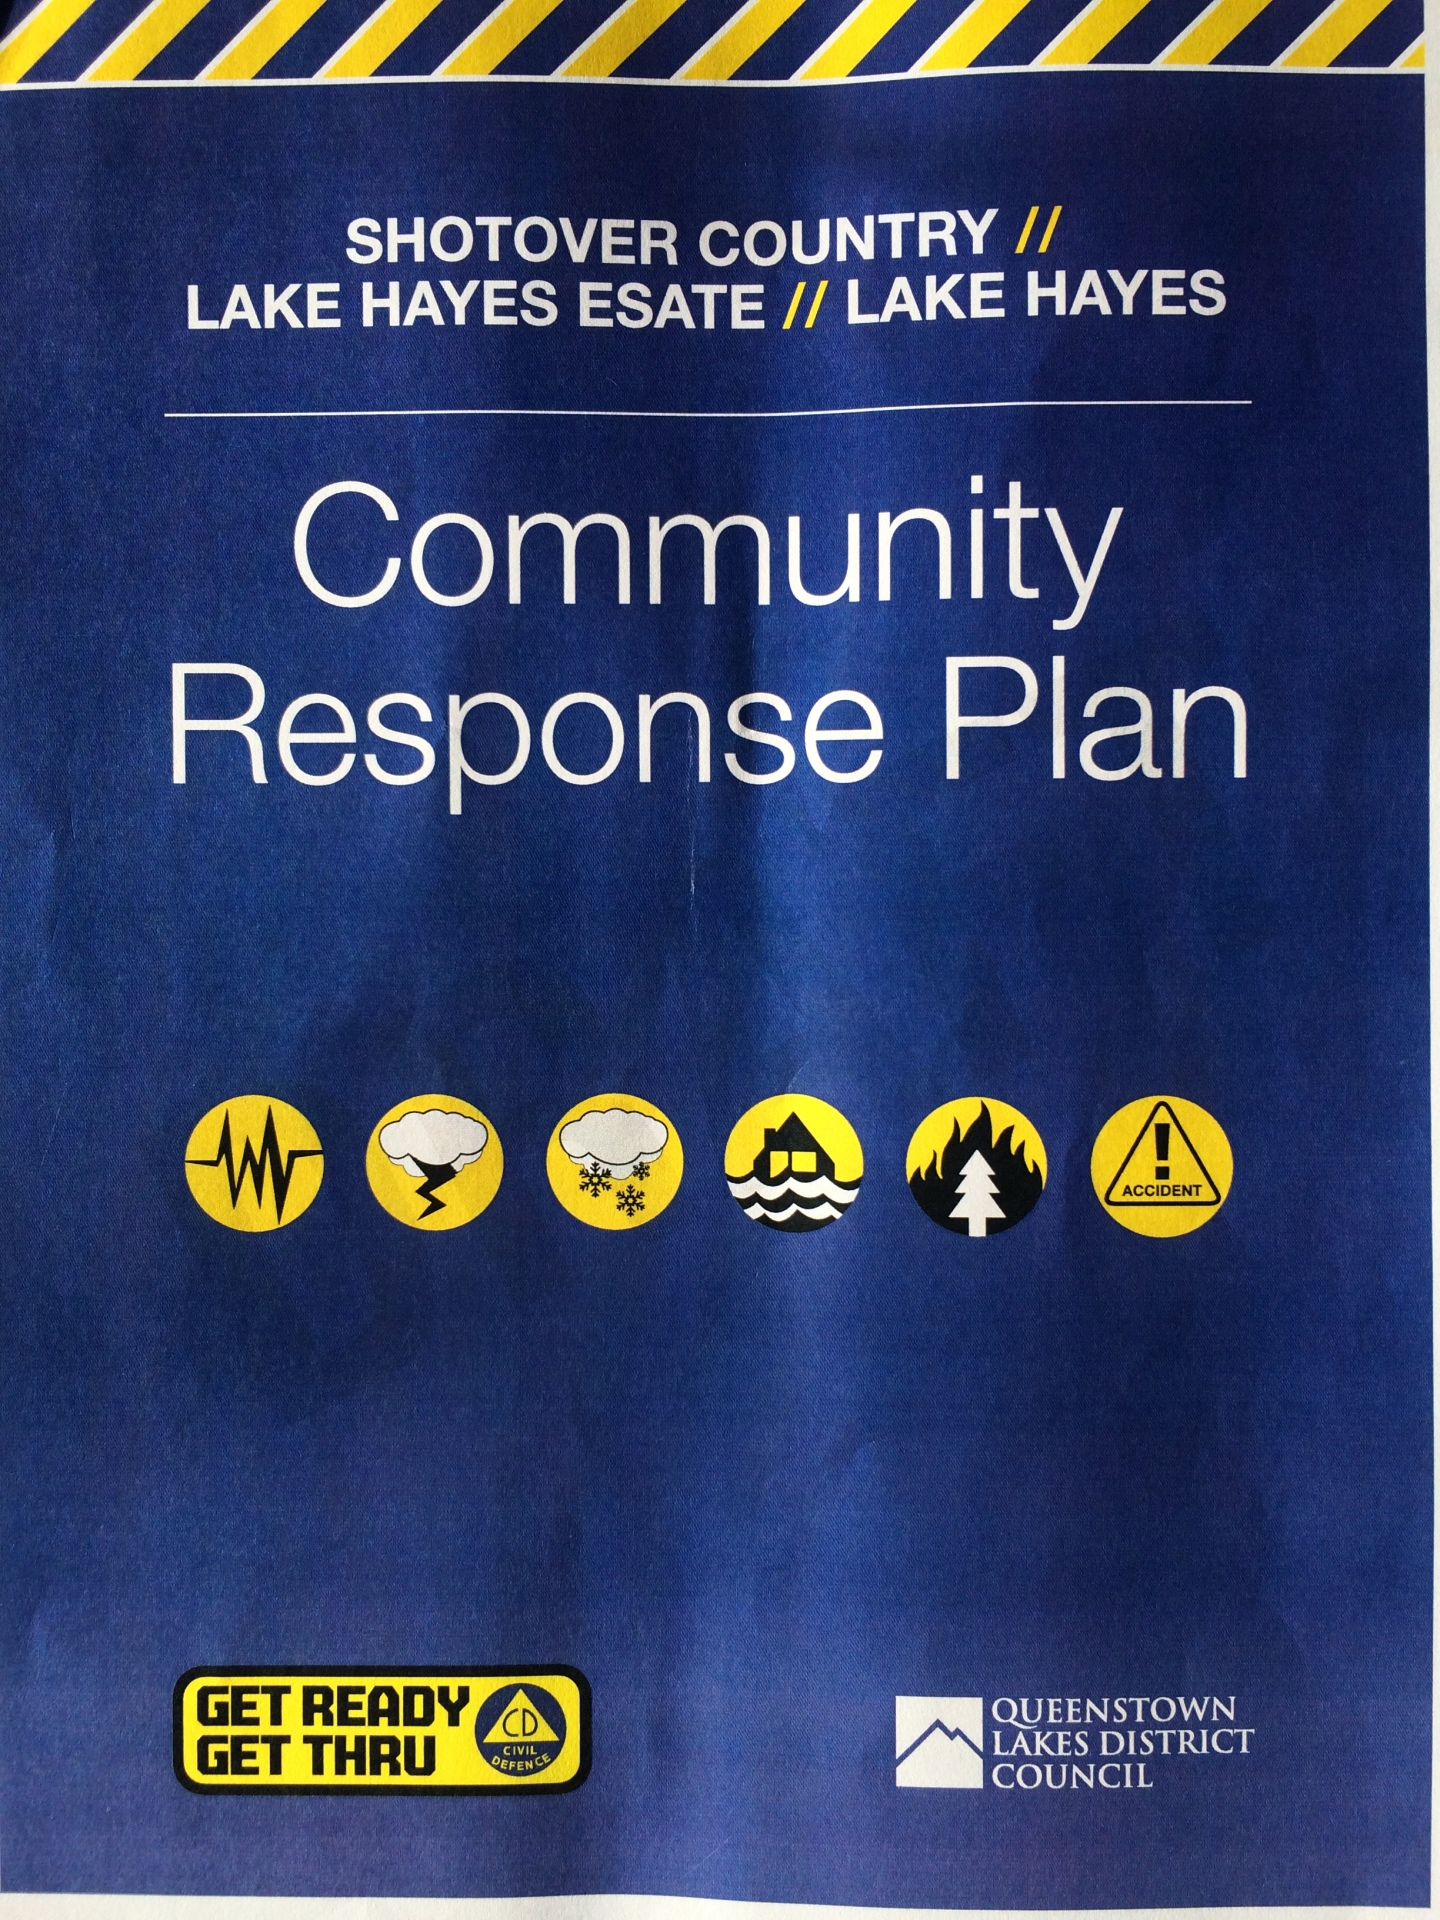 Shotover Country and Lake Hayes Estate Community Response Plan